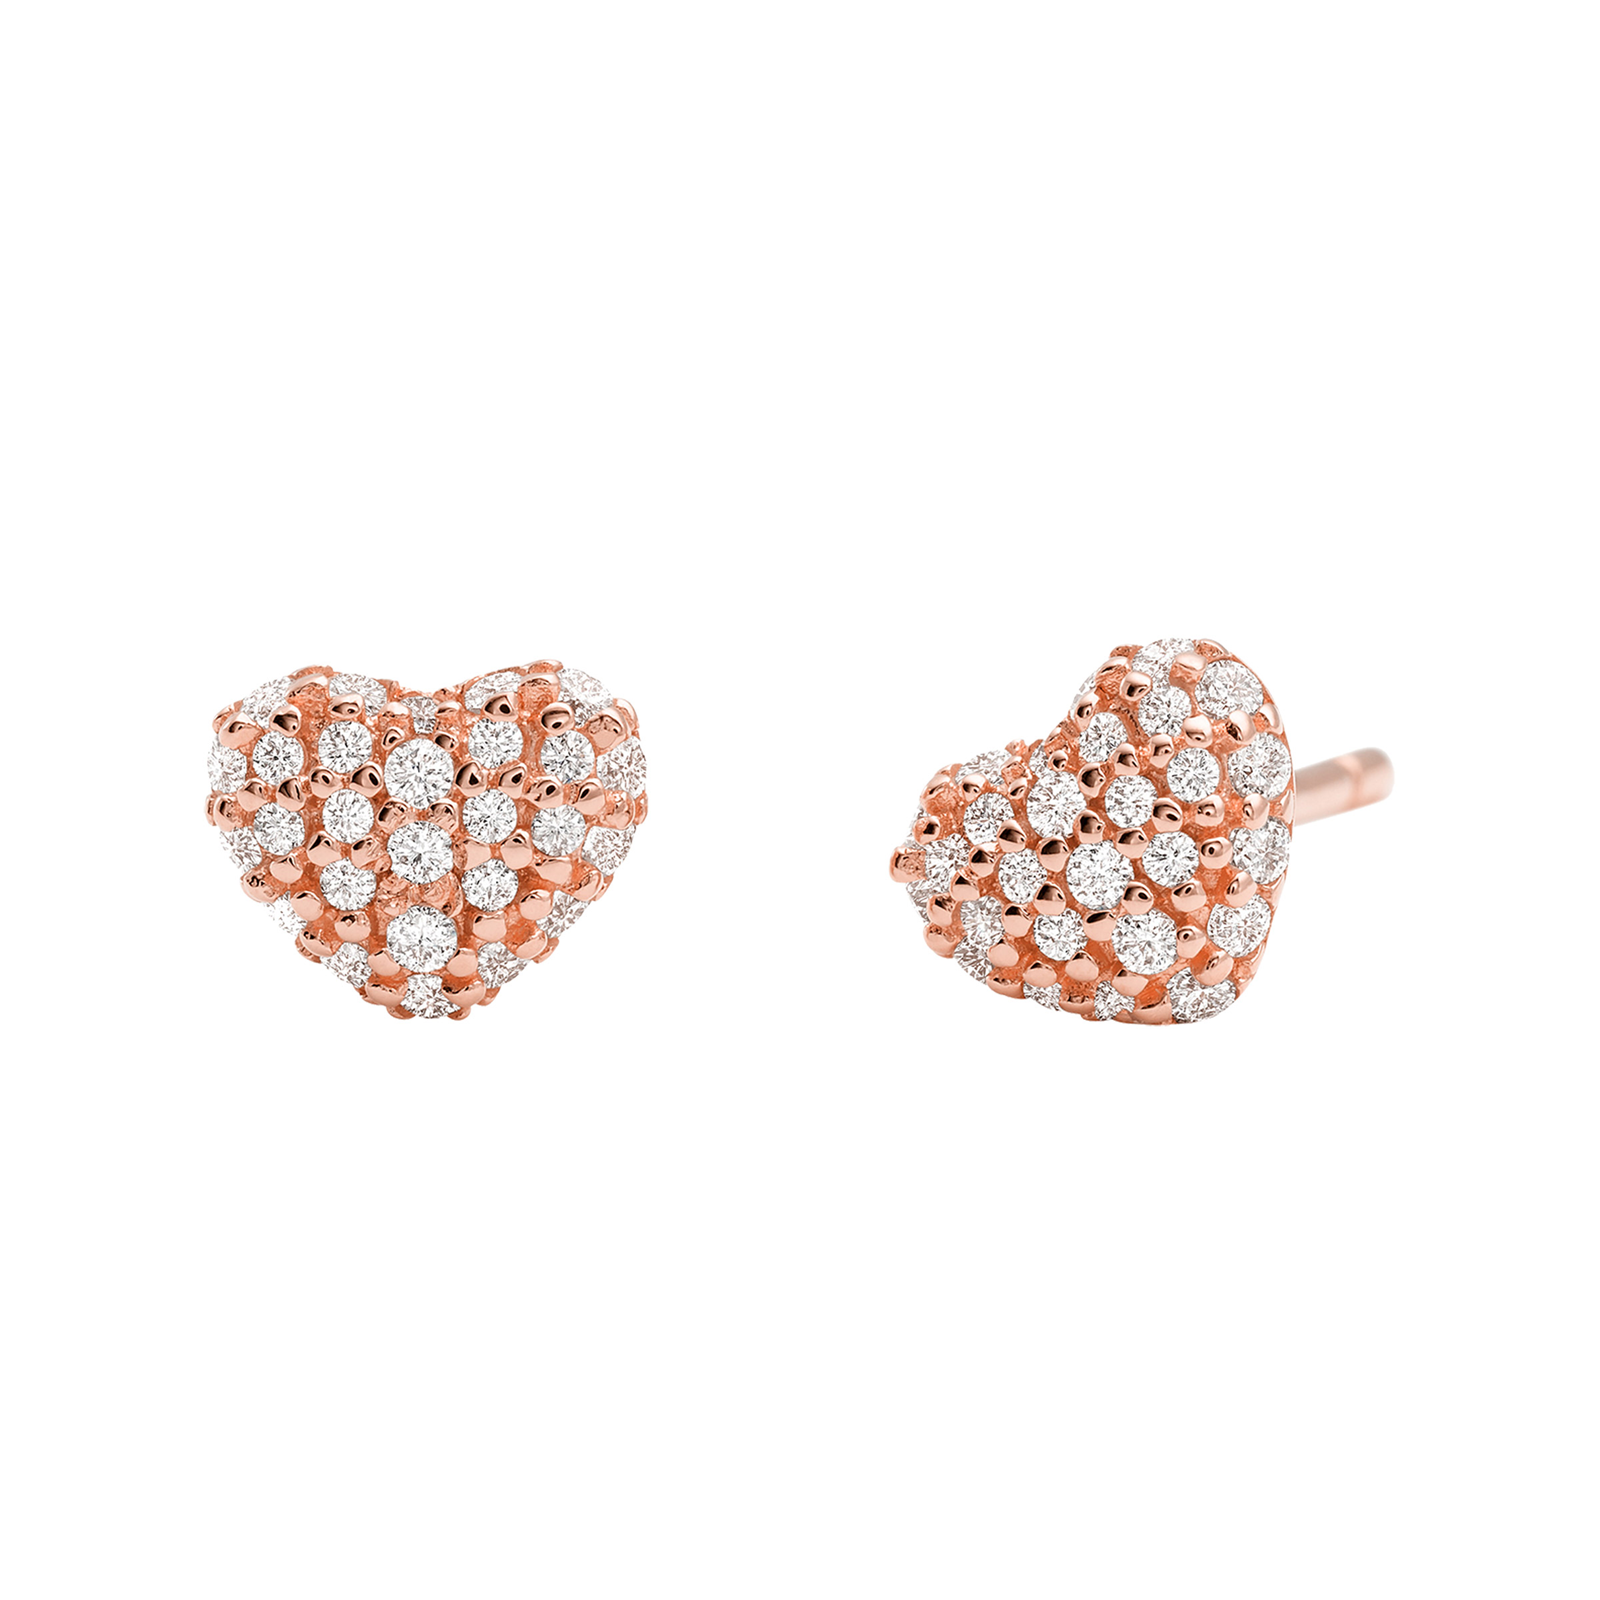 167b0df96 Michael Kors Pave 14ct Rose Gold Plated Heart Stud Earrings | Earrings |  Jewellery | Goldsmiths